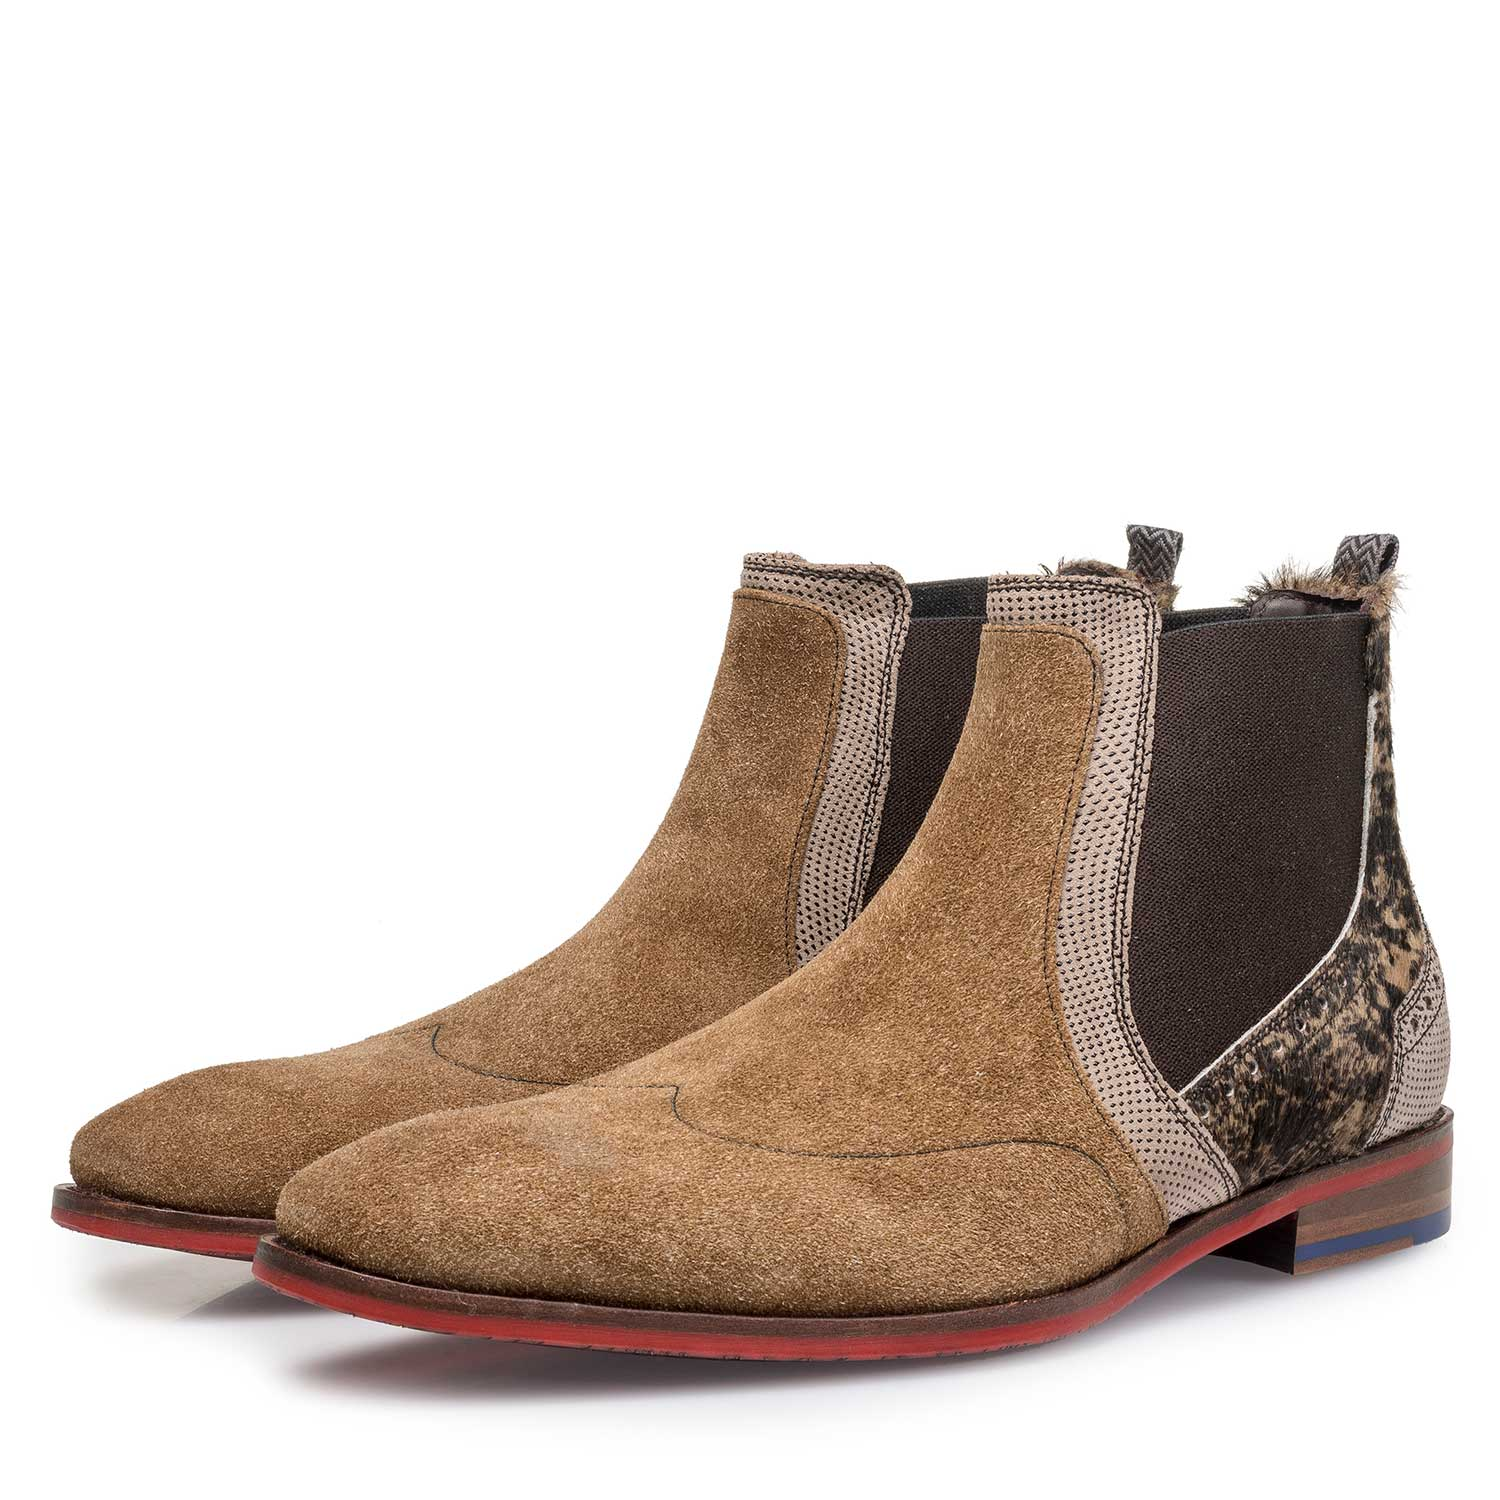 10455/05 - Brown suede leather Chelsea boot with pony hair